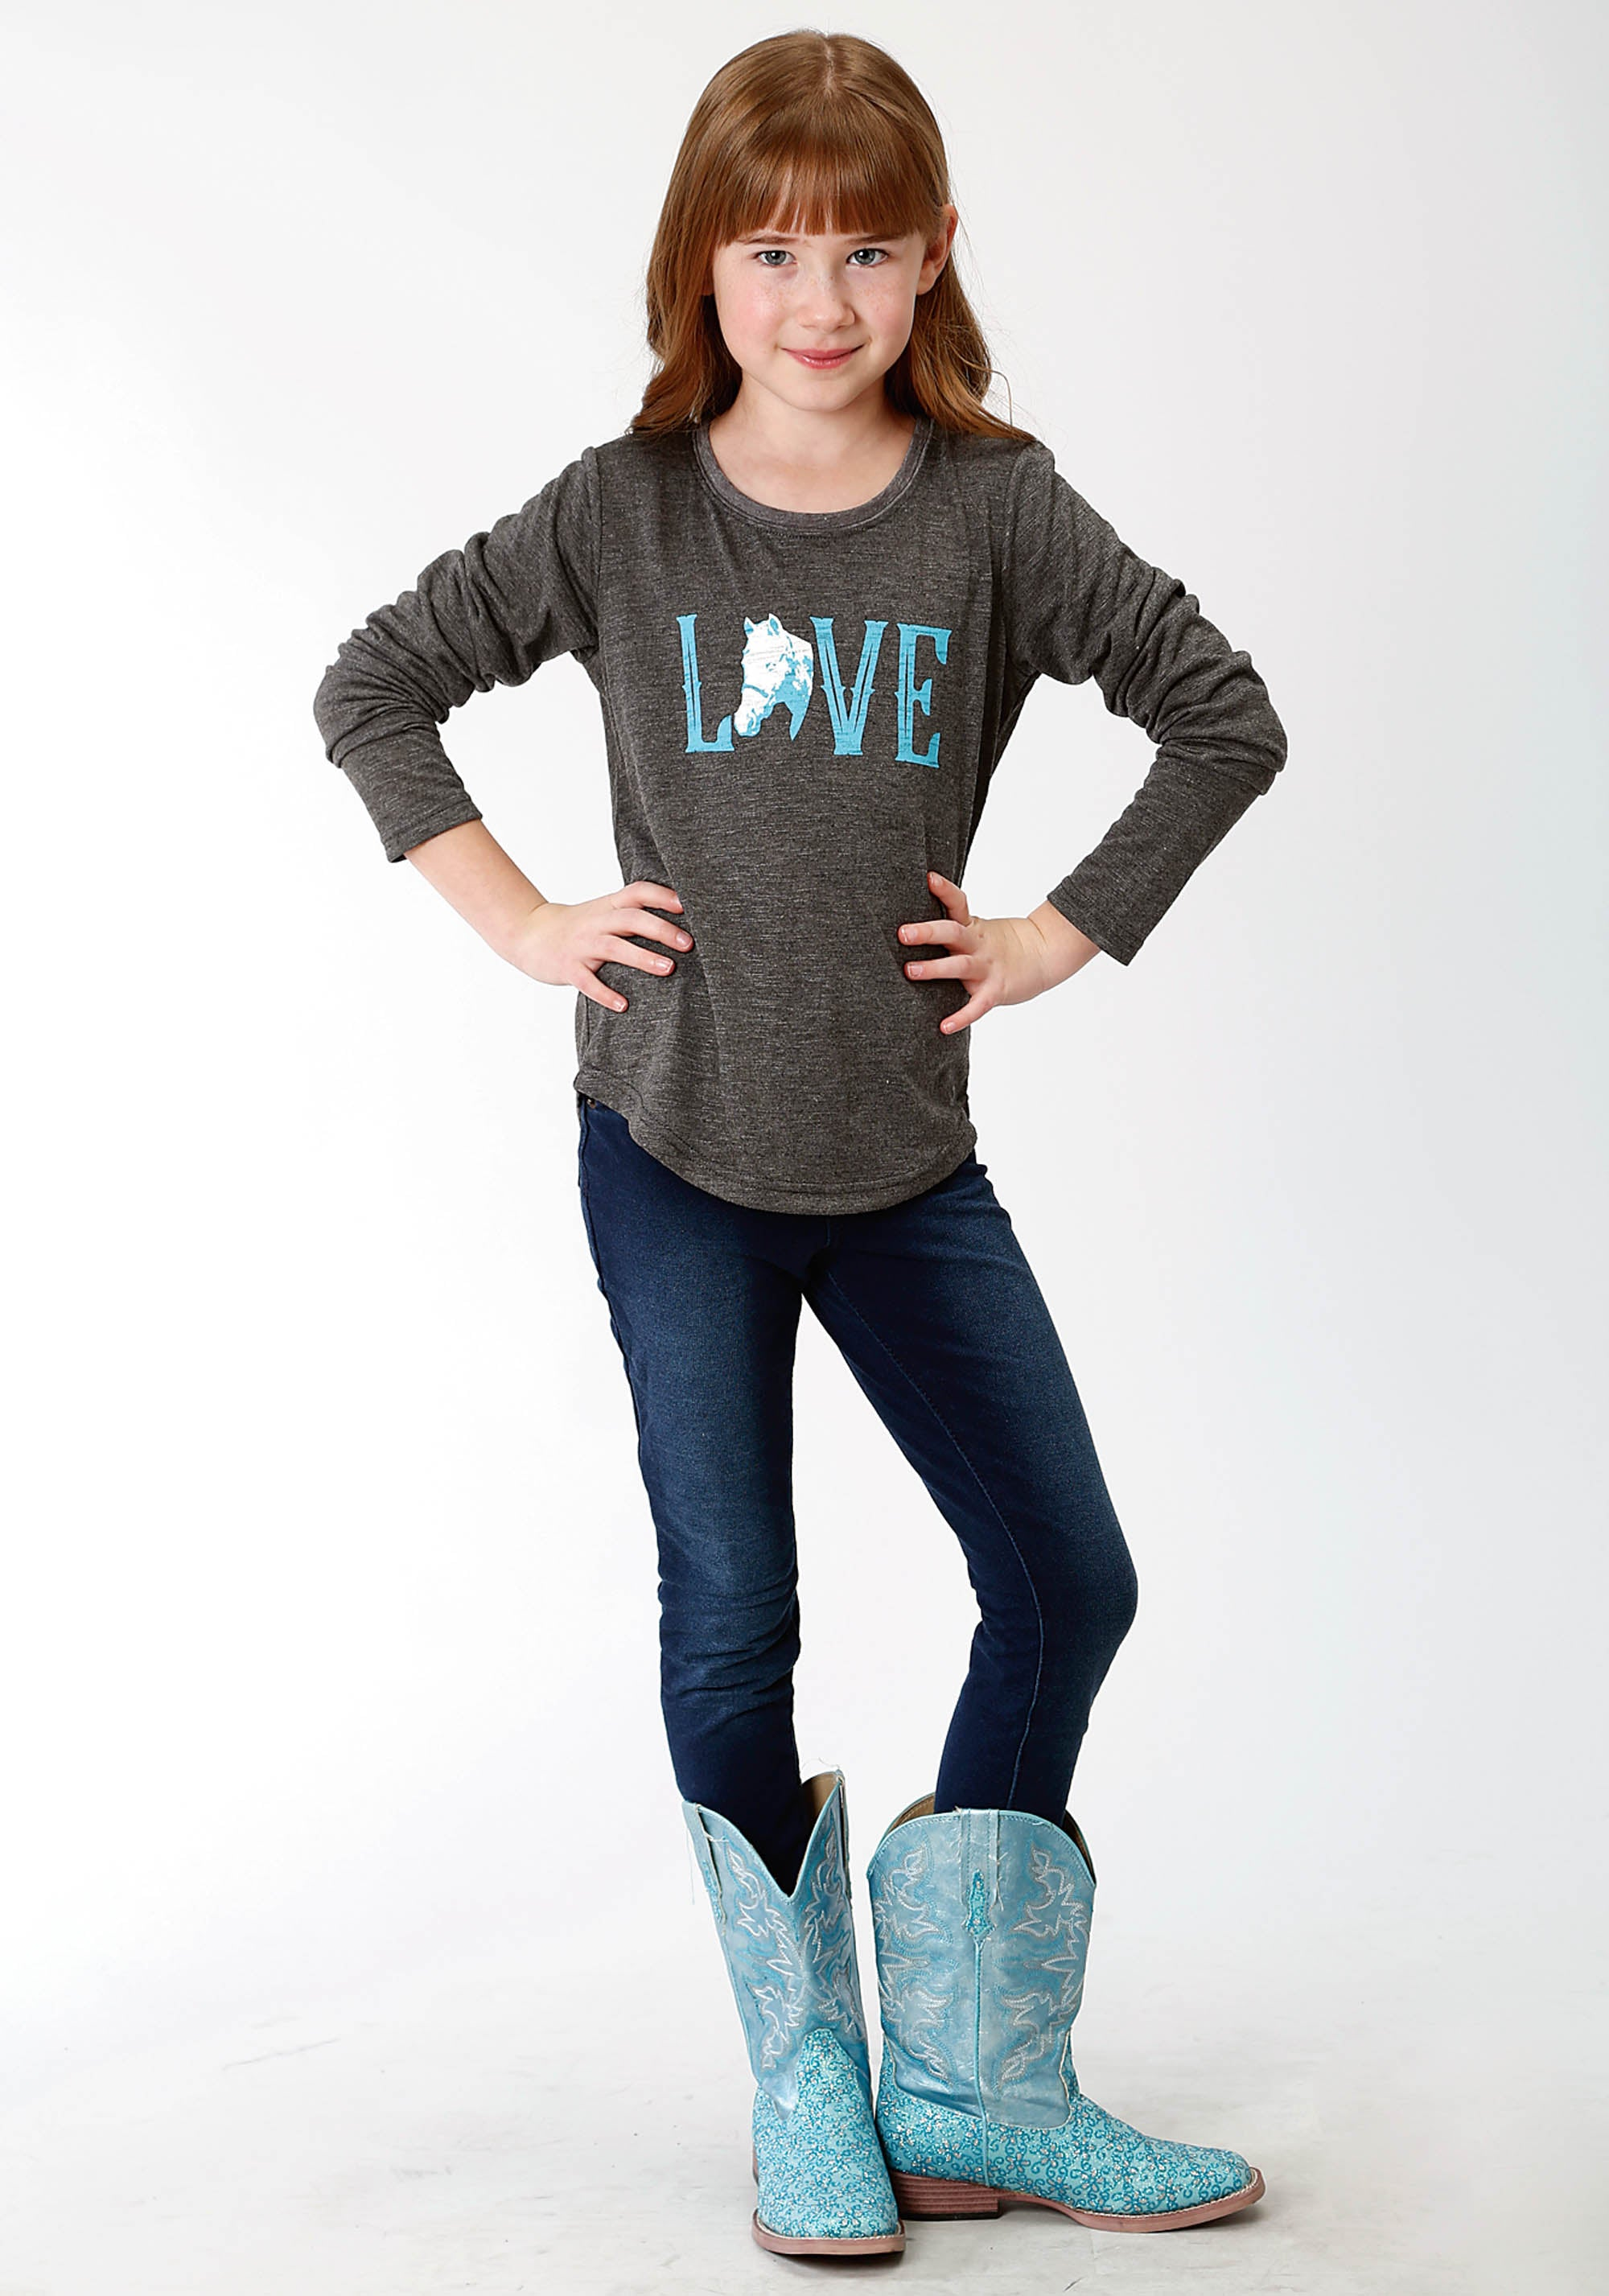 ROPER GIRLS GREY 0489 P/R SLUB JERSEY GIRLS LS TEE FIVE STAR GIRLS LONG SLEEVE